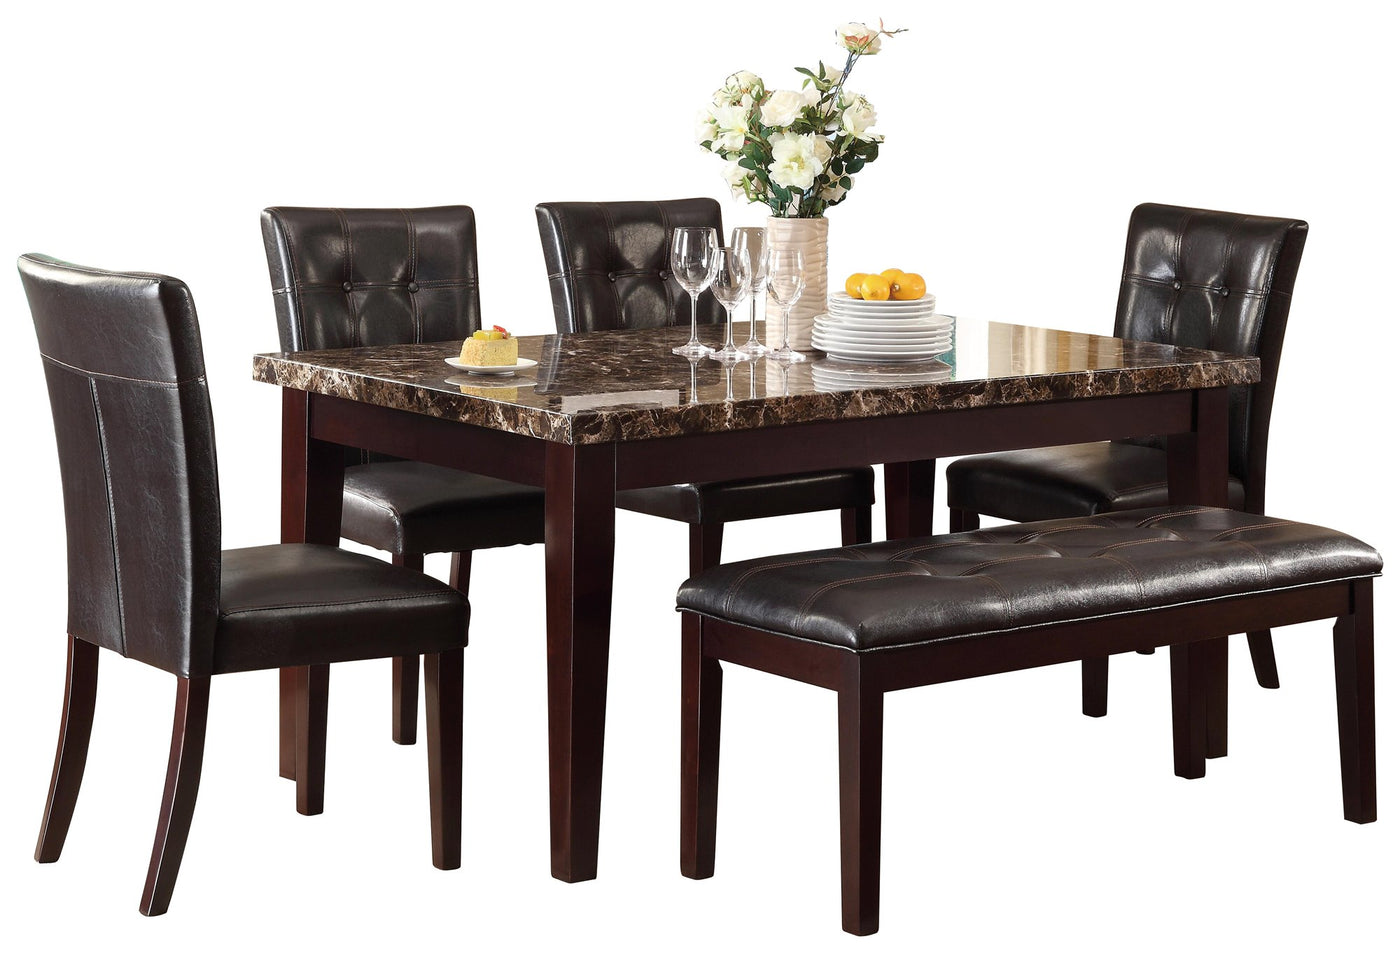 Homelegance Teague 6pc Dining Set Dining Table With Faux Marble The Furniture Space